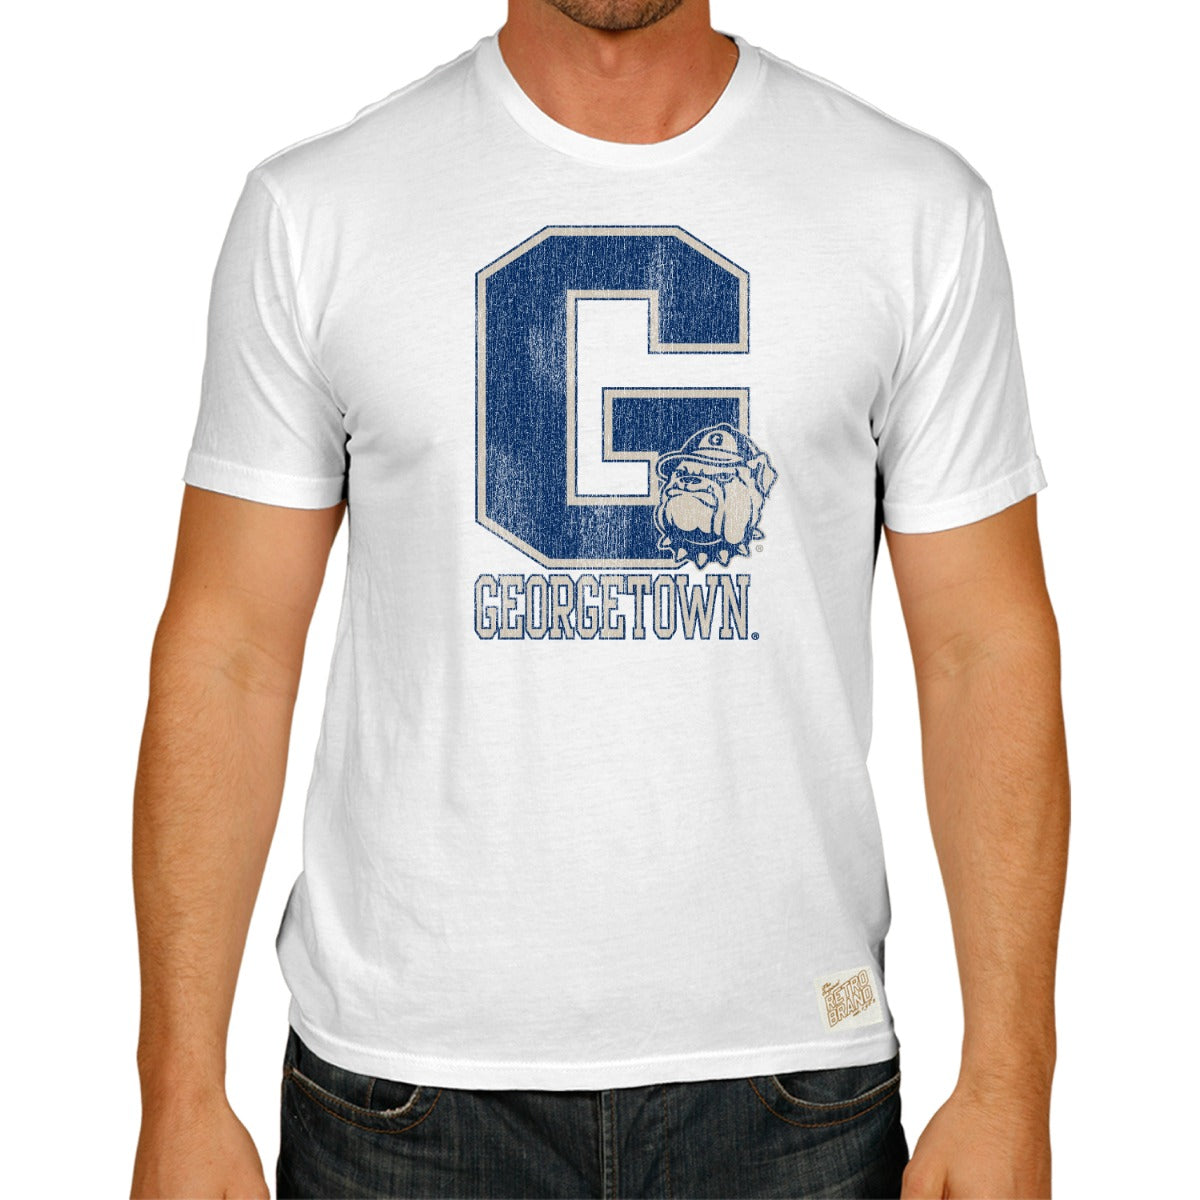 Georgetown Men's Worlds Best Tee